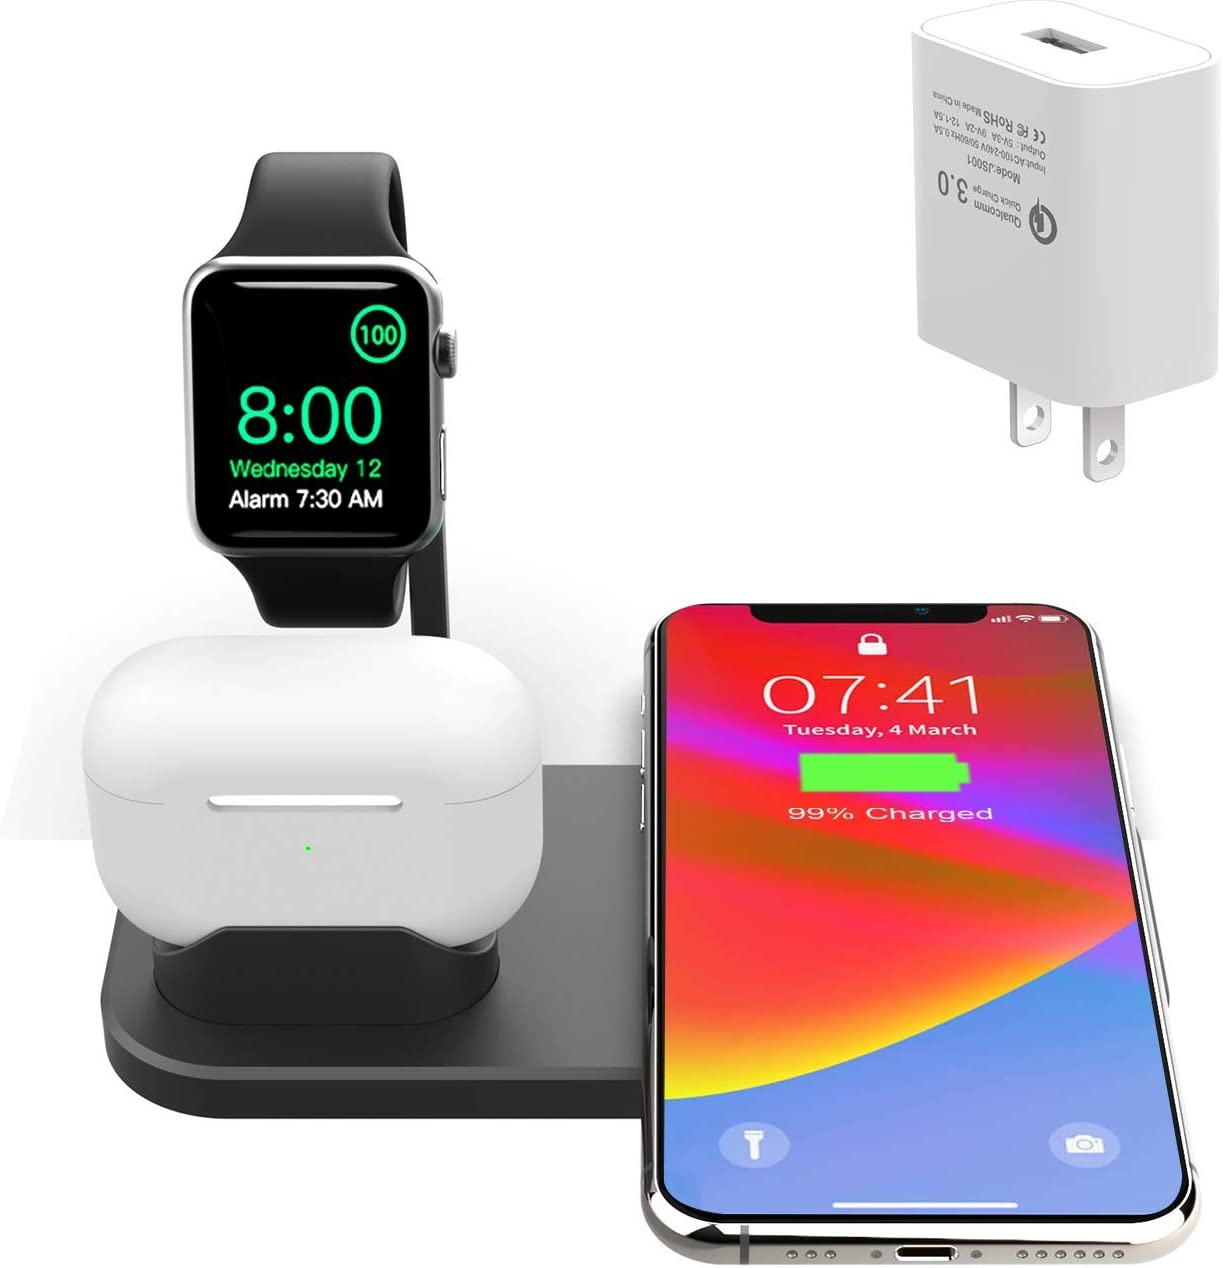 BNCHI Wireless Charger, 3 in 1 Wireless Charging Stand for Latest Airpods iPhone and iWatch, Wireless Compatible for iPhone 11/11 Pro Max/X/XS Max/8 iWatch Stand 5 4 3 2 1 Airpods 3 2 1